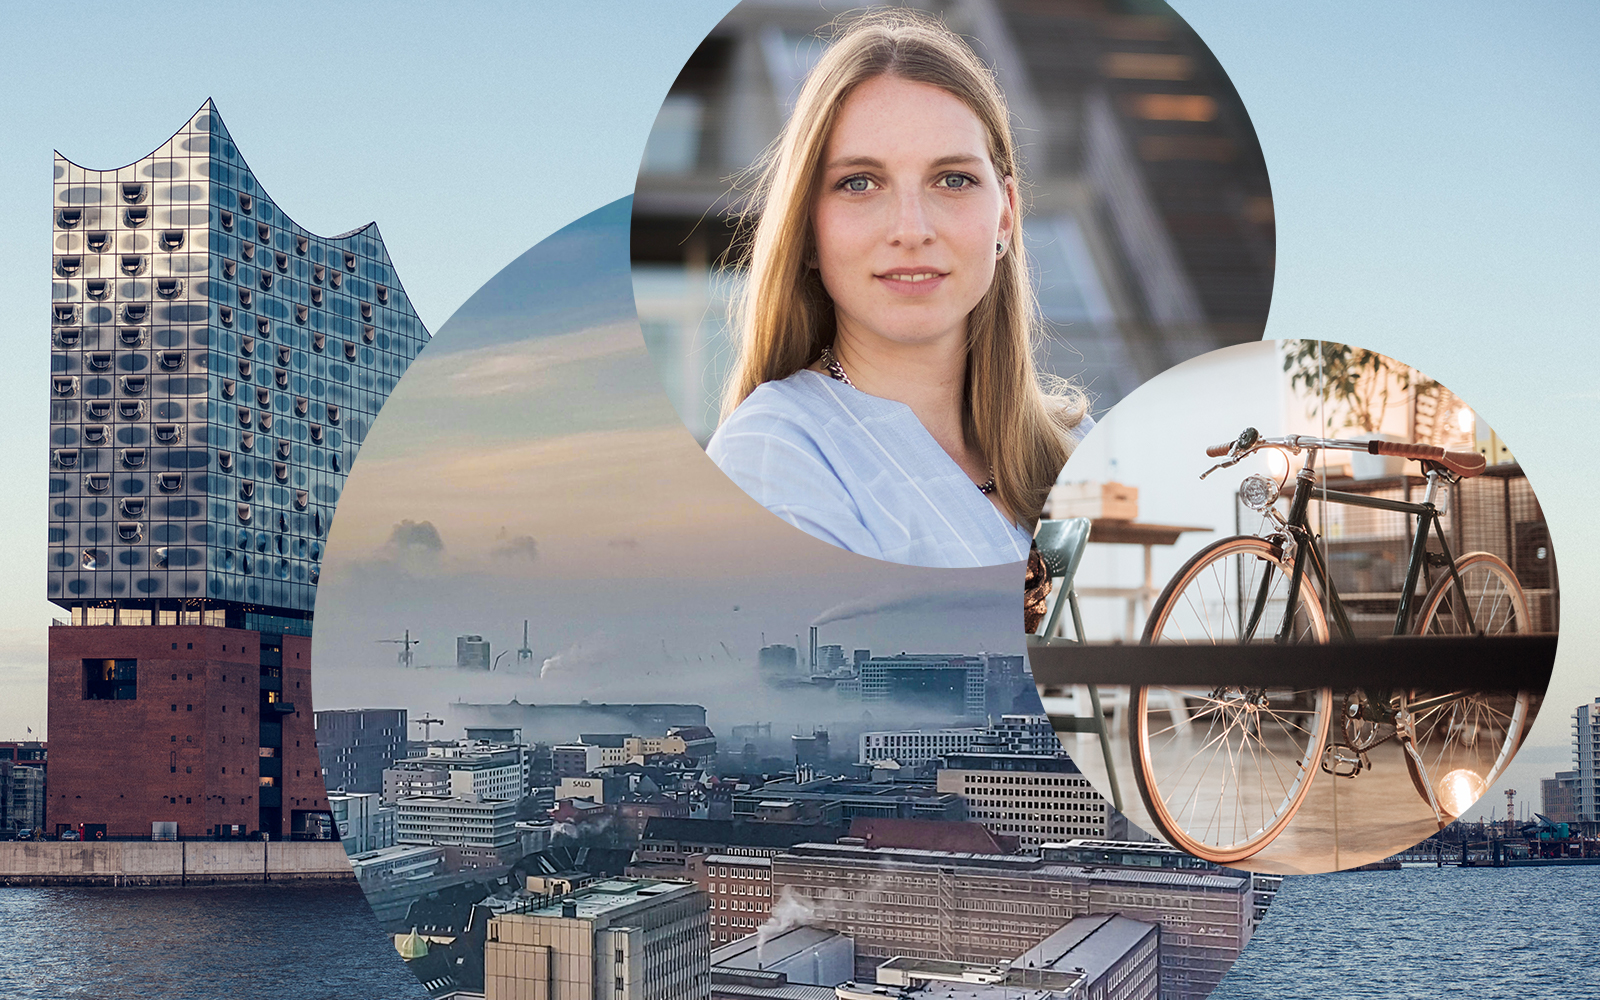 Image of Kirsten Nachtmann, Consultant SAP Business Intelligence (BI) at valantic Business Analytics in Hamburg, in the background the Elbphilharmonie in Hamburg as well as the skyline and a bike in the office